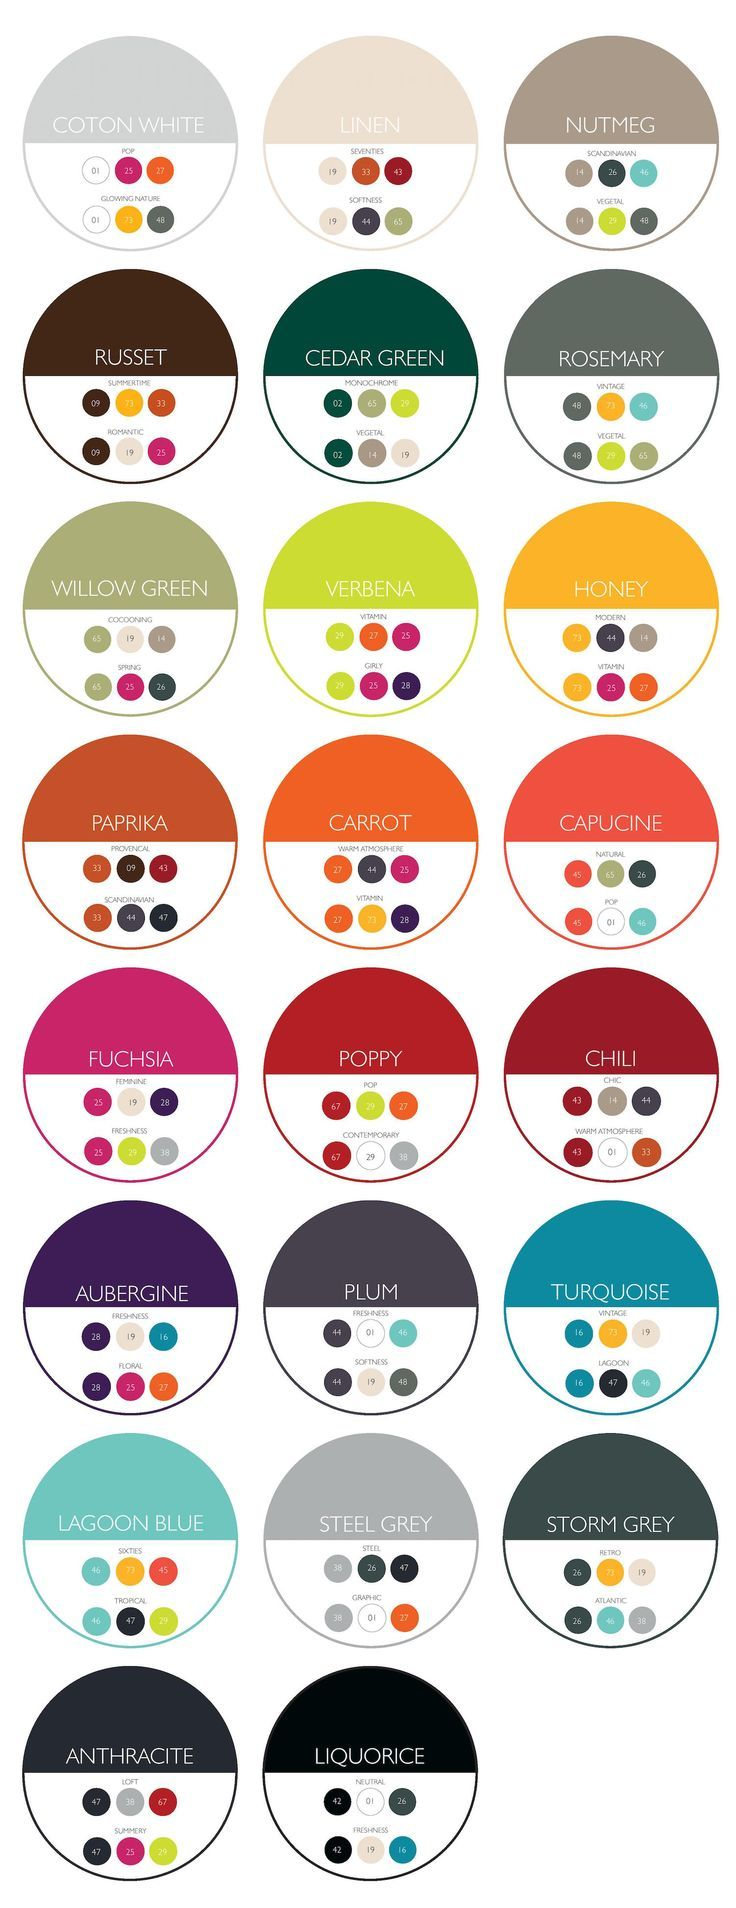 Ca car color combos - 2016 Fermob Color Combination Chart Which Colors Look Best With Each Other Design